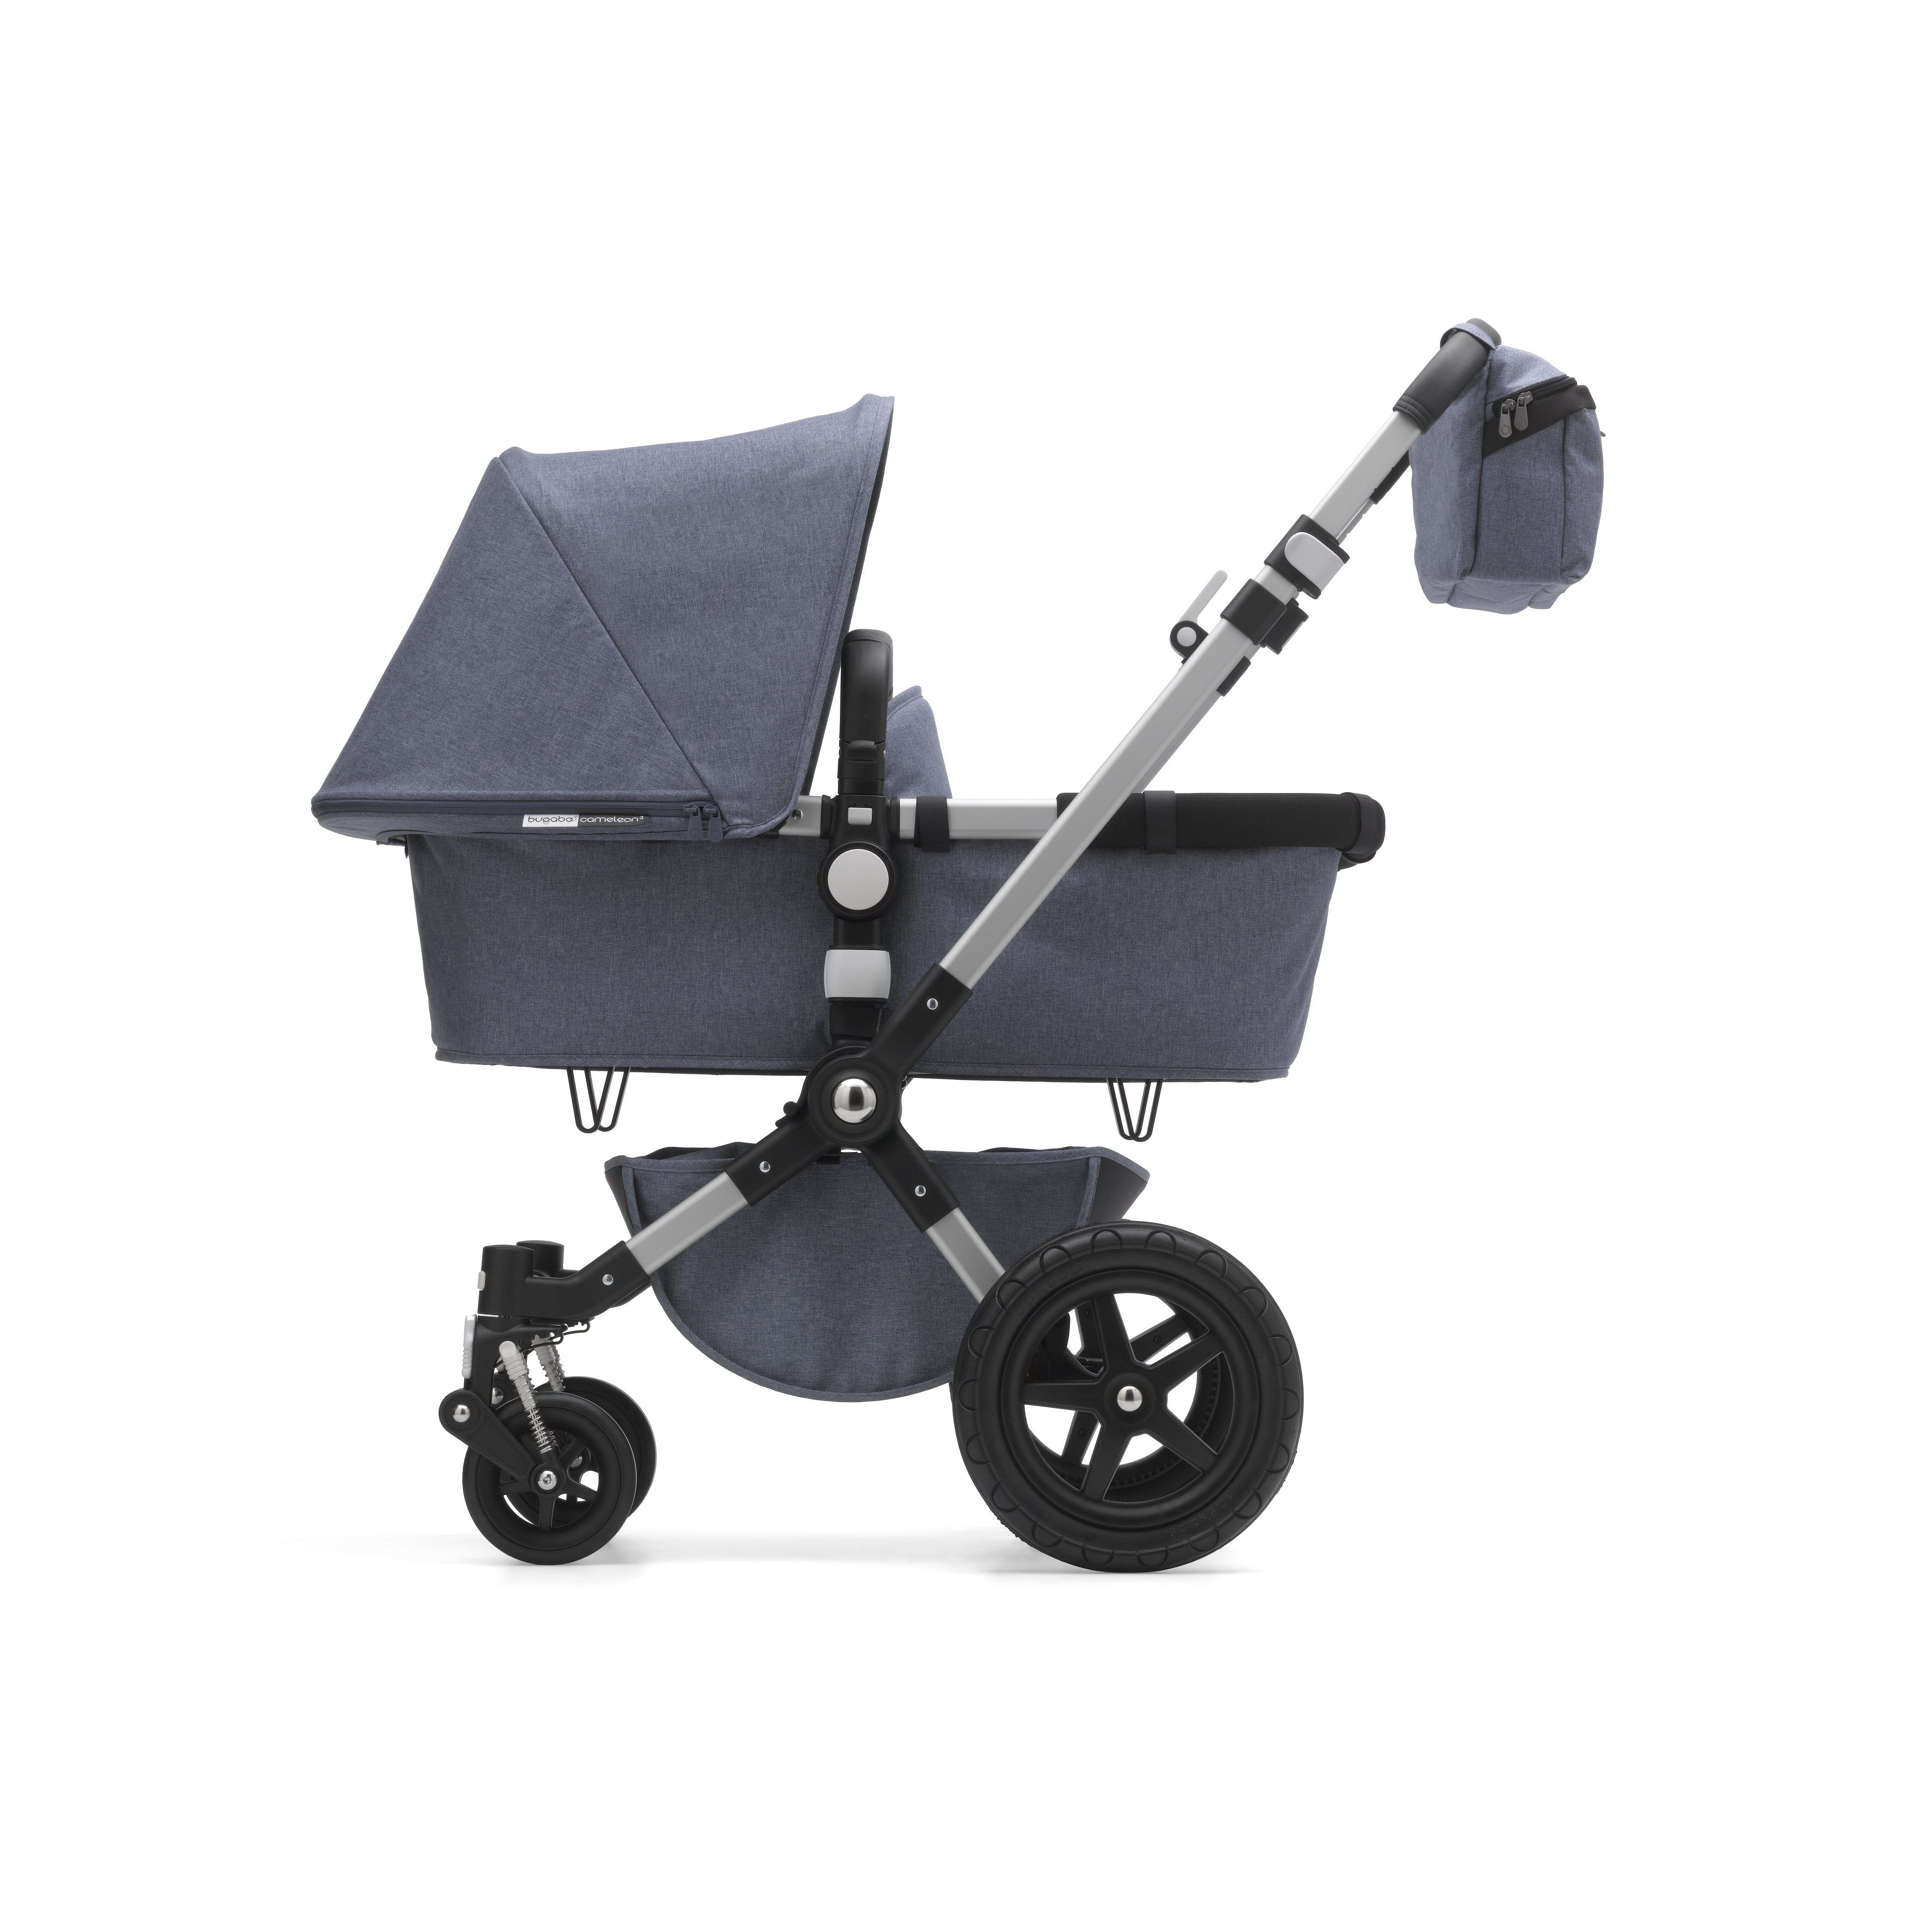 Bugaboo Cameleon 3 Maximum Weight Bugaboo S Iconic Stroller The Bugaboo Cameleon3 Has